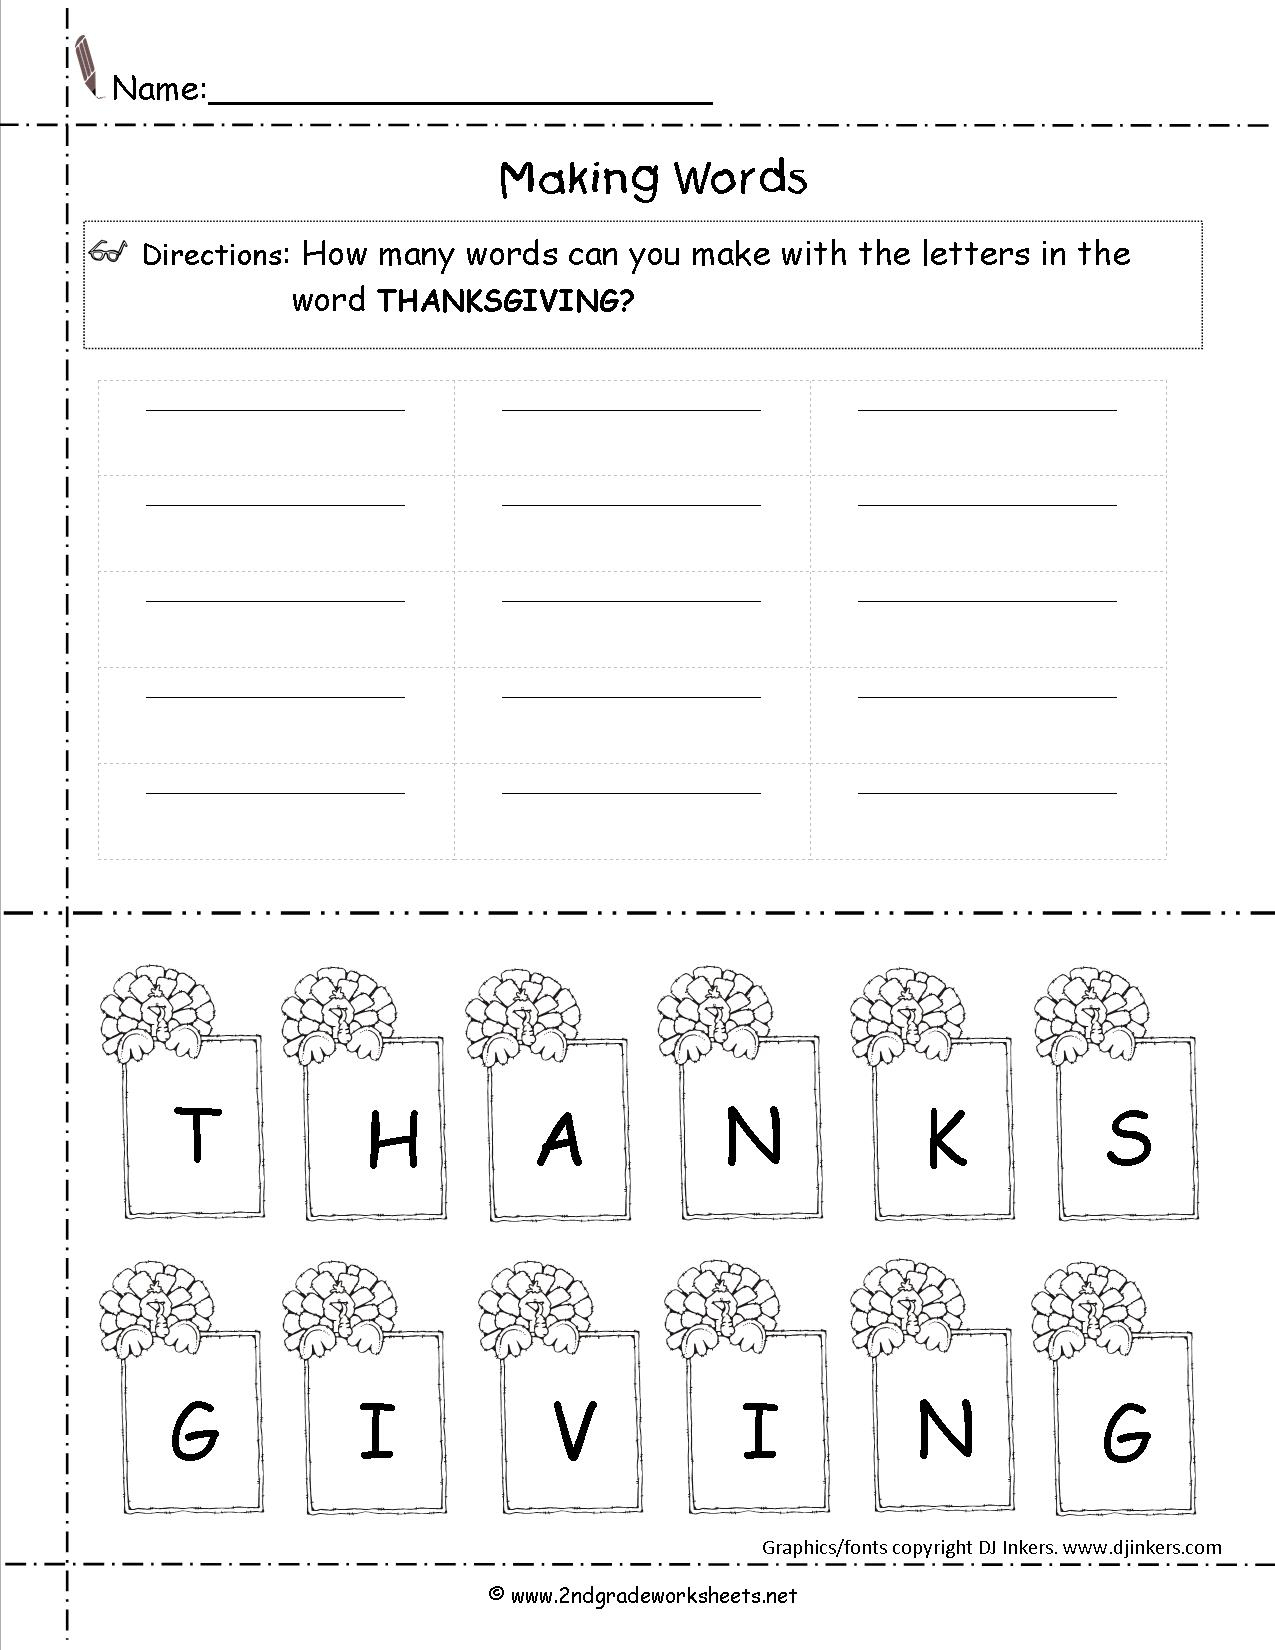 Thanksgiving Printouts And Worksheets - Free Printable Thanksgiving | Free Printable Thanksgiving Worksheets